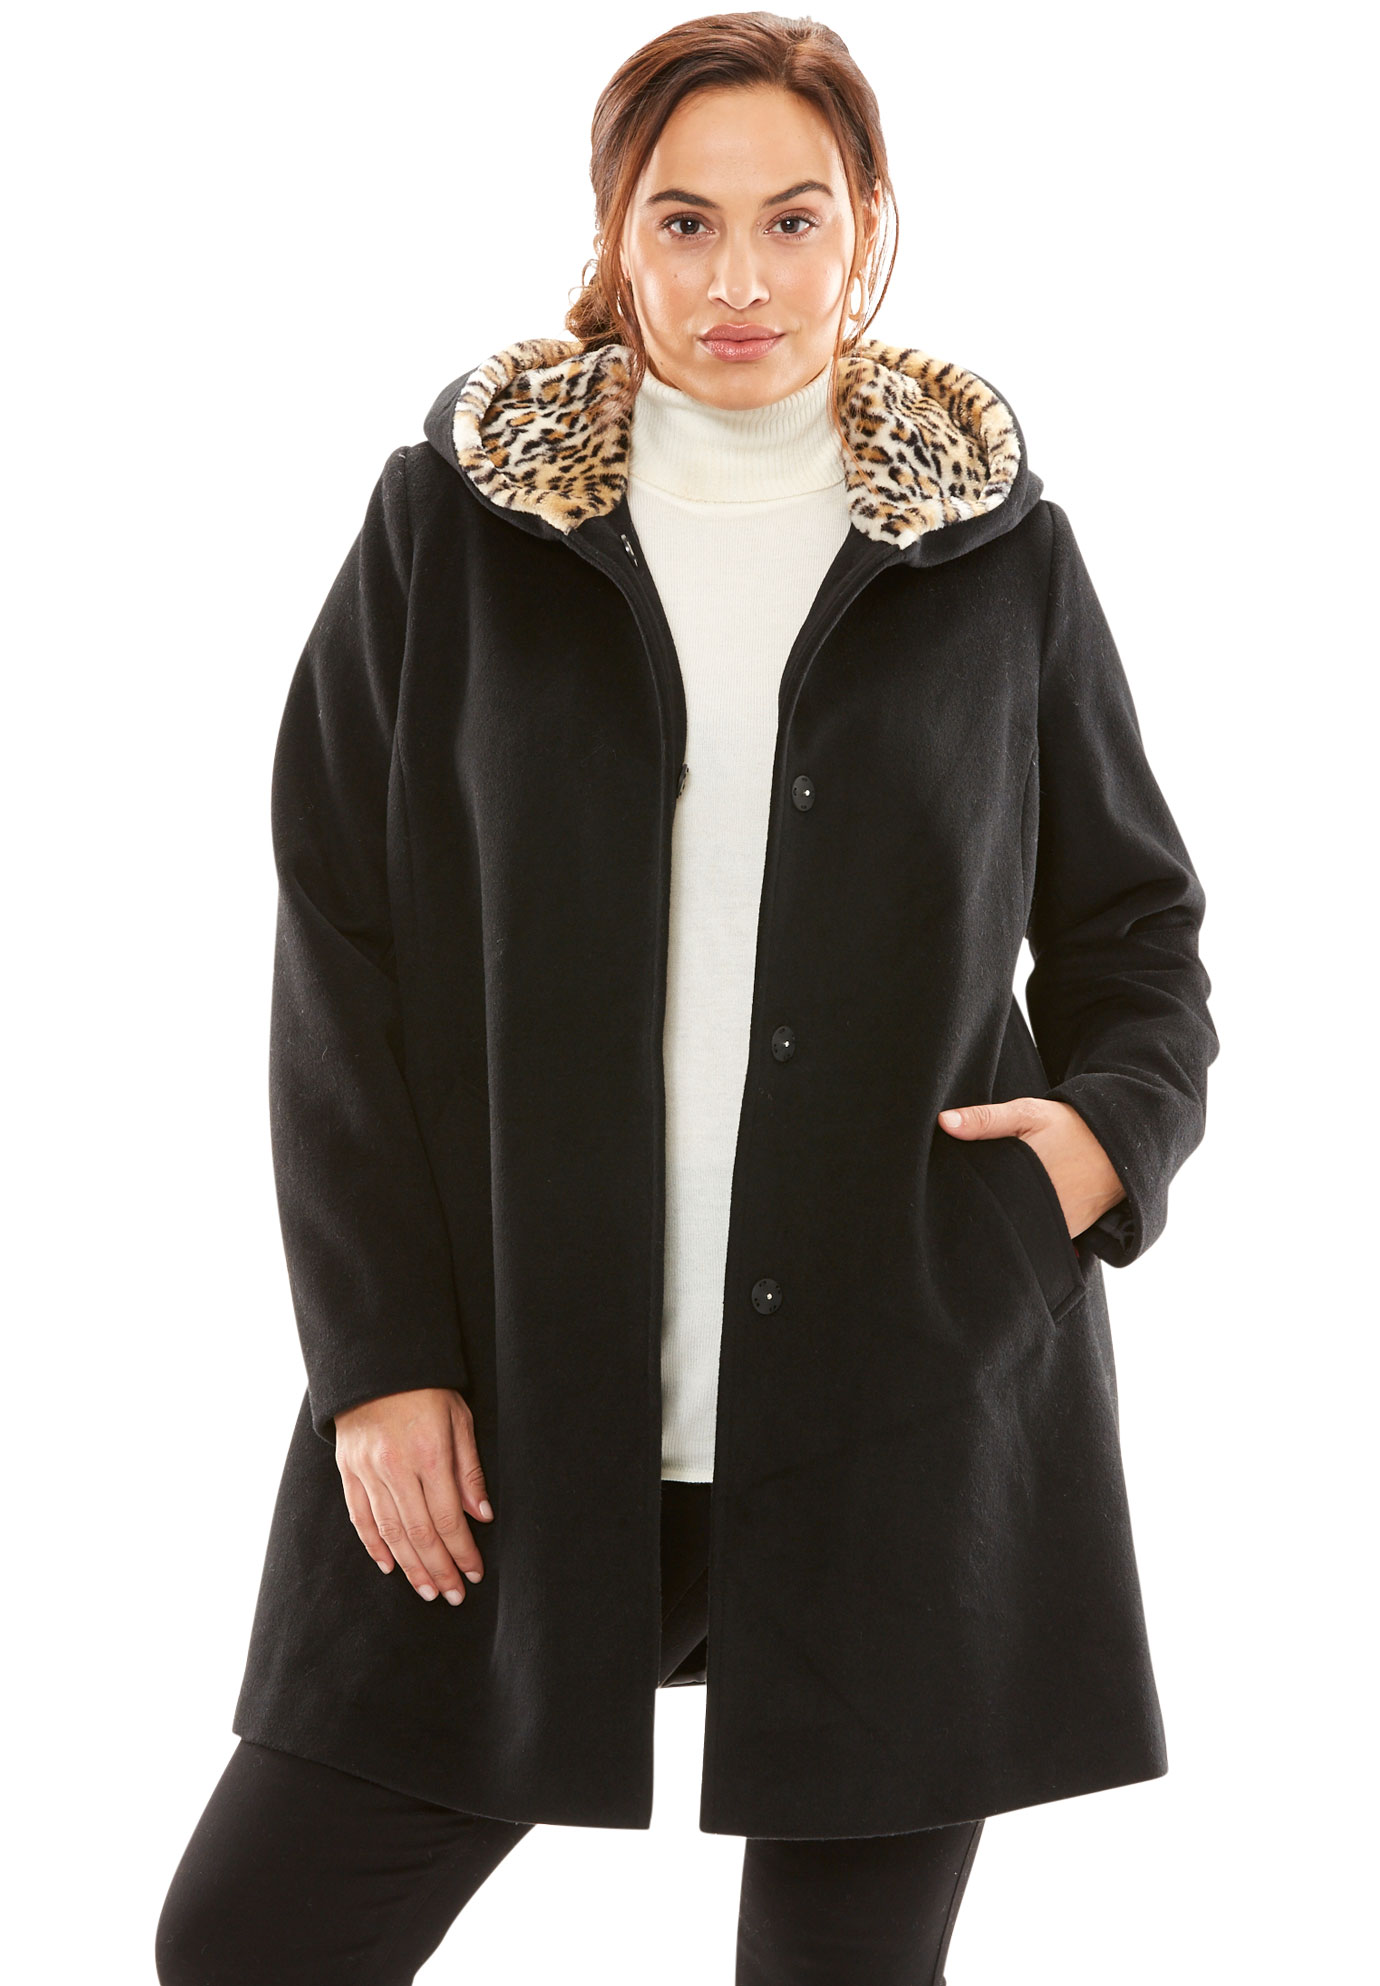 ff52021f5fb7 A-Line Coat With Leopard-Print Hood| Plus Size Coats | Full Beauty